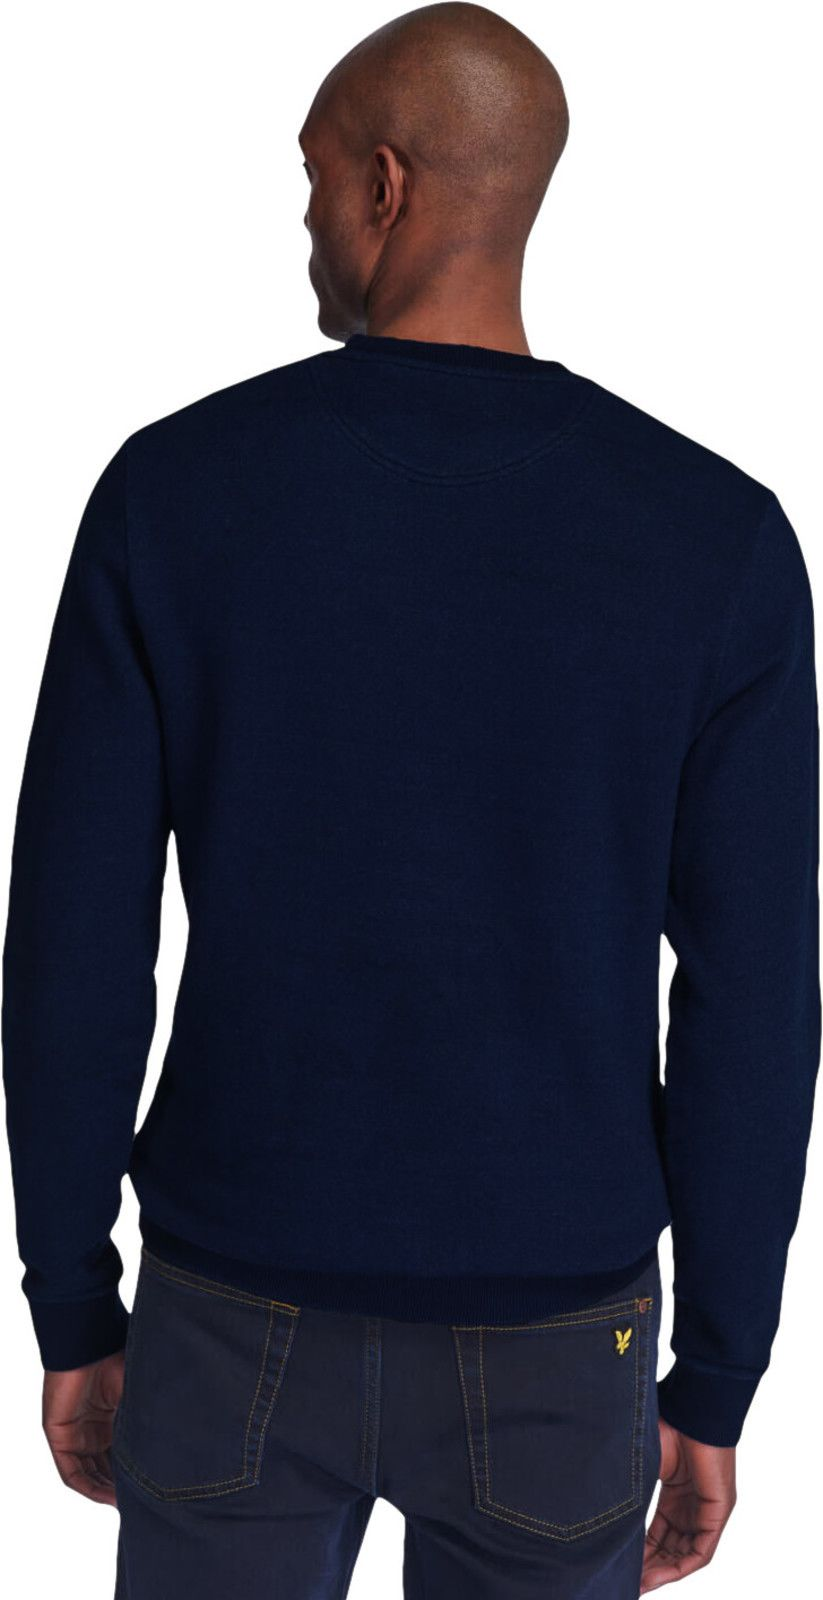 Lyle & Scott Indigo Sweatshirt Navy